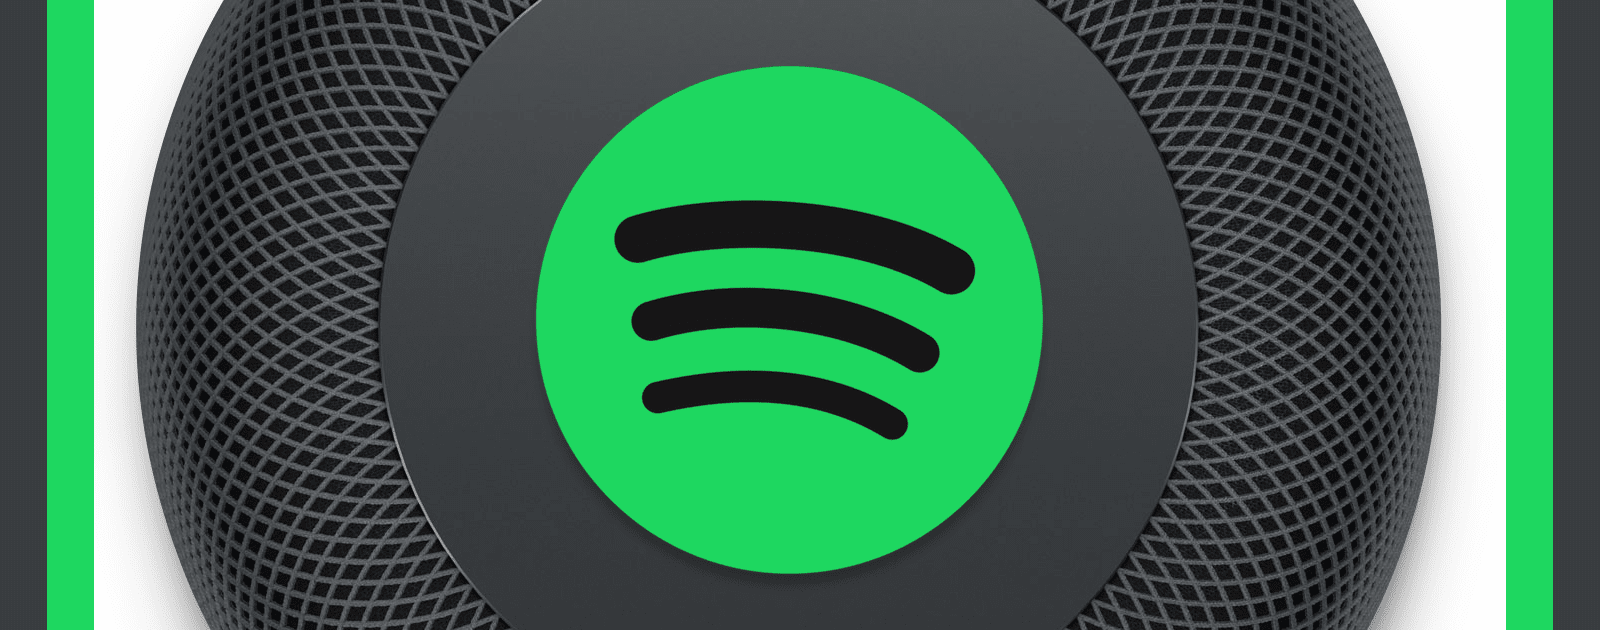 Spotify Connect on HomePod